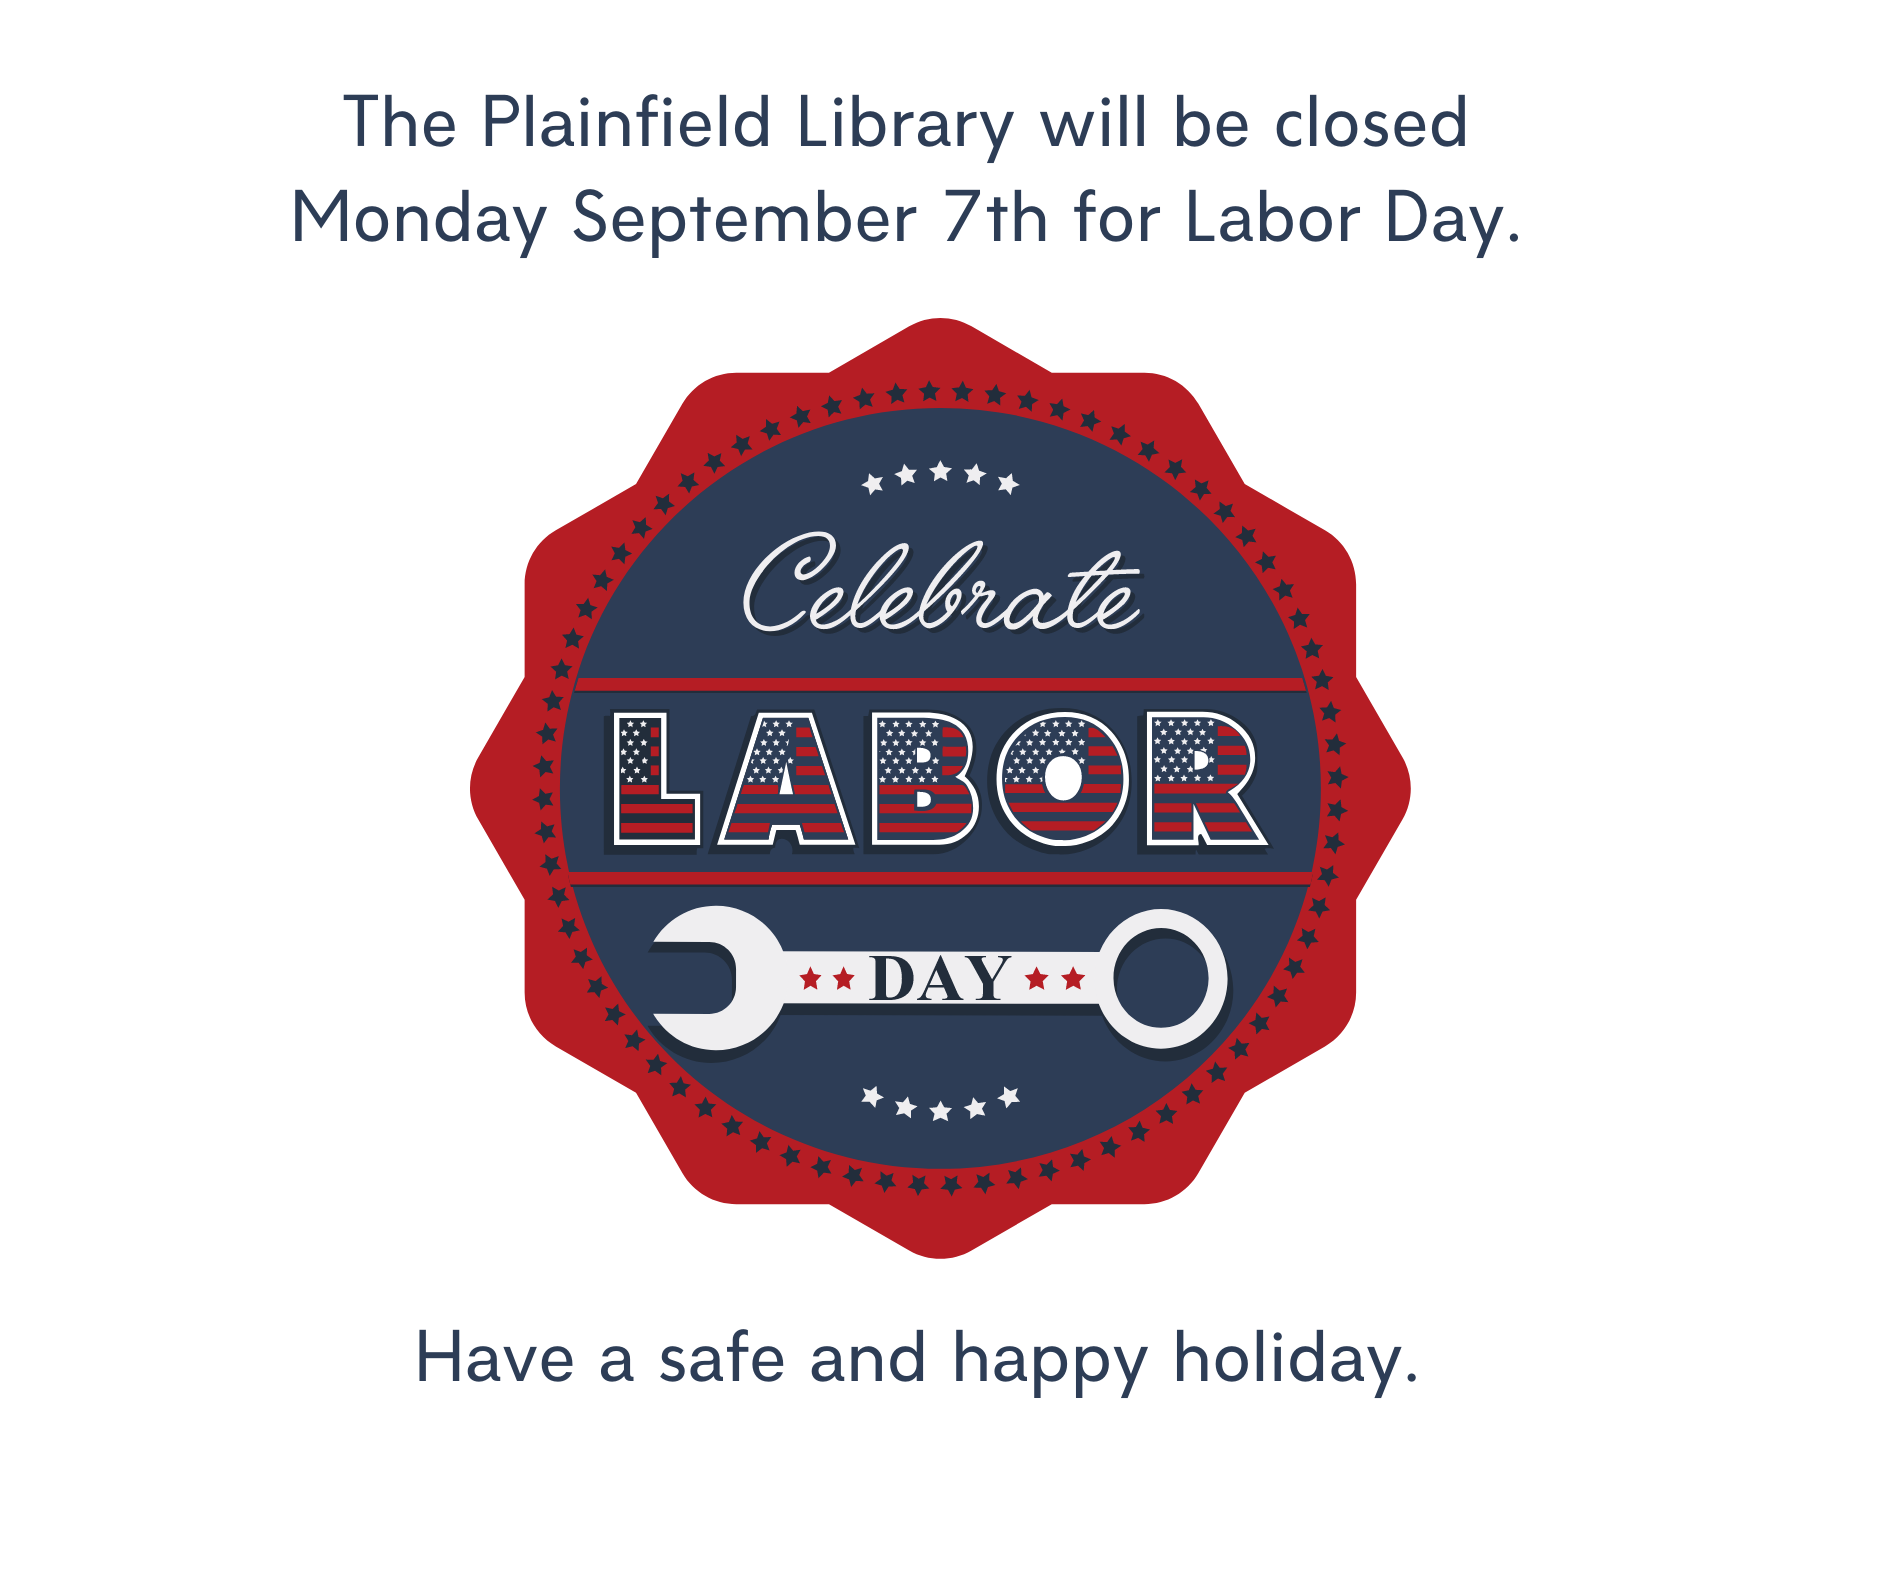 We WIll Be Closed Monday September 7th for Labor Day